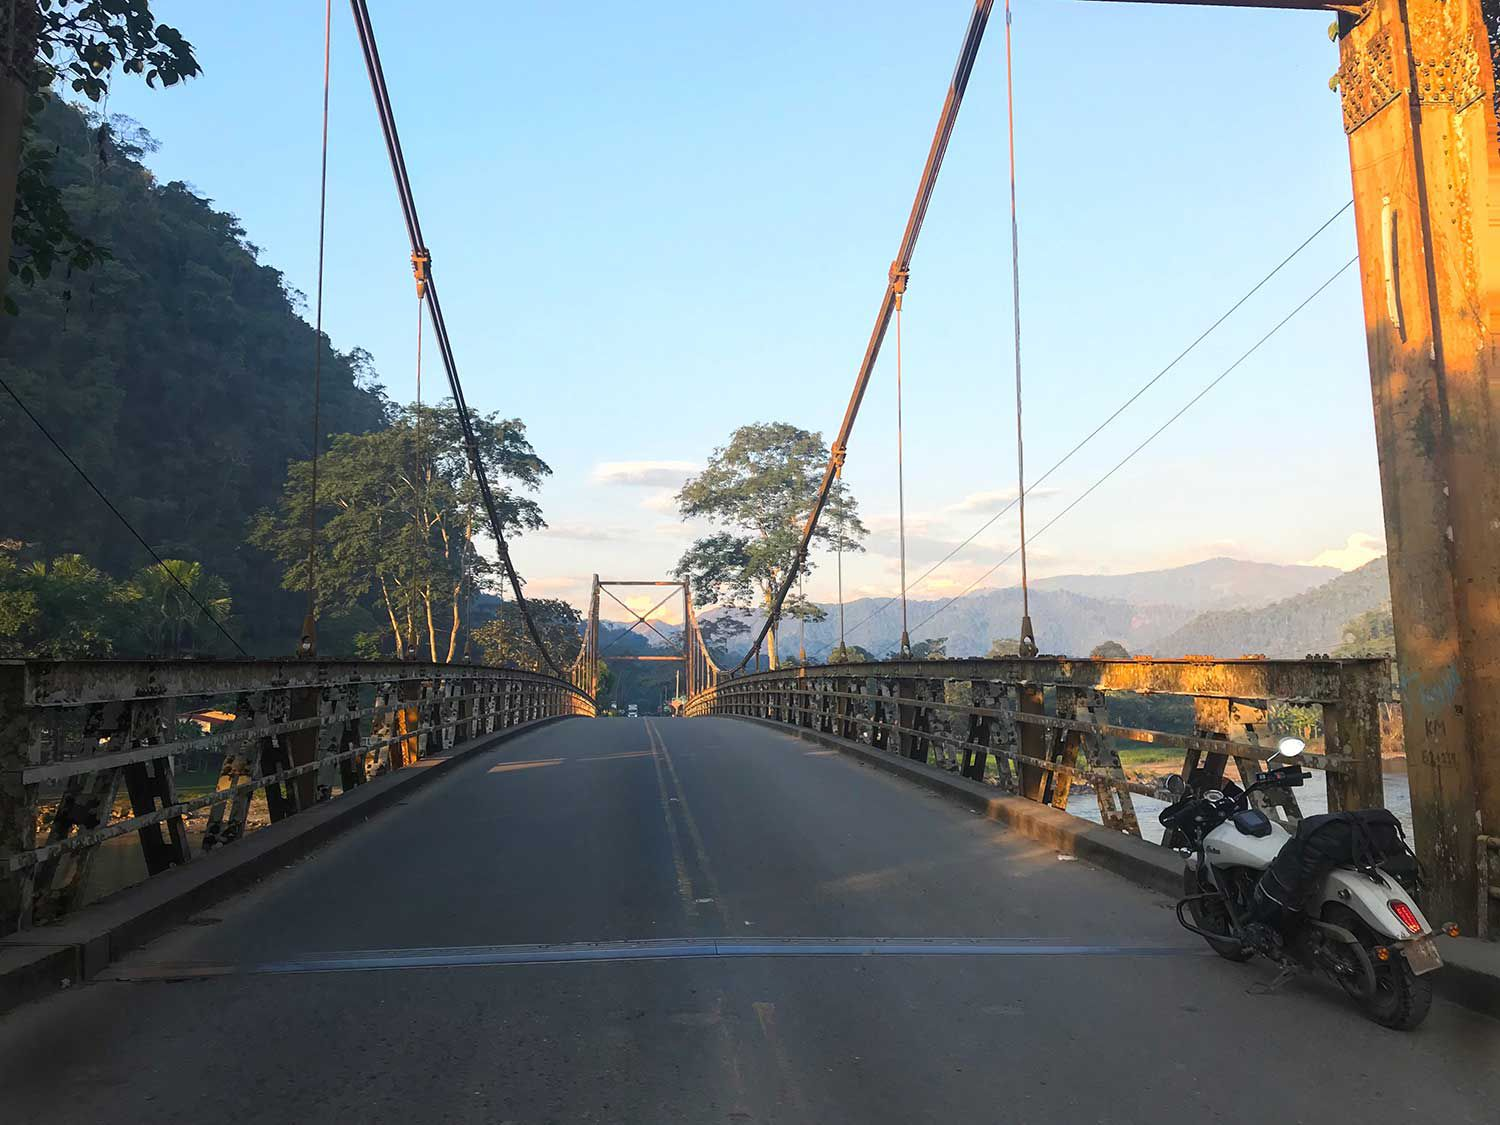 Adventuring Peru by motorcycle is full of wonders and surprises around every corner and across every bridge.